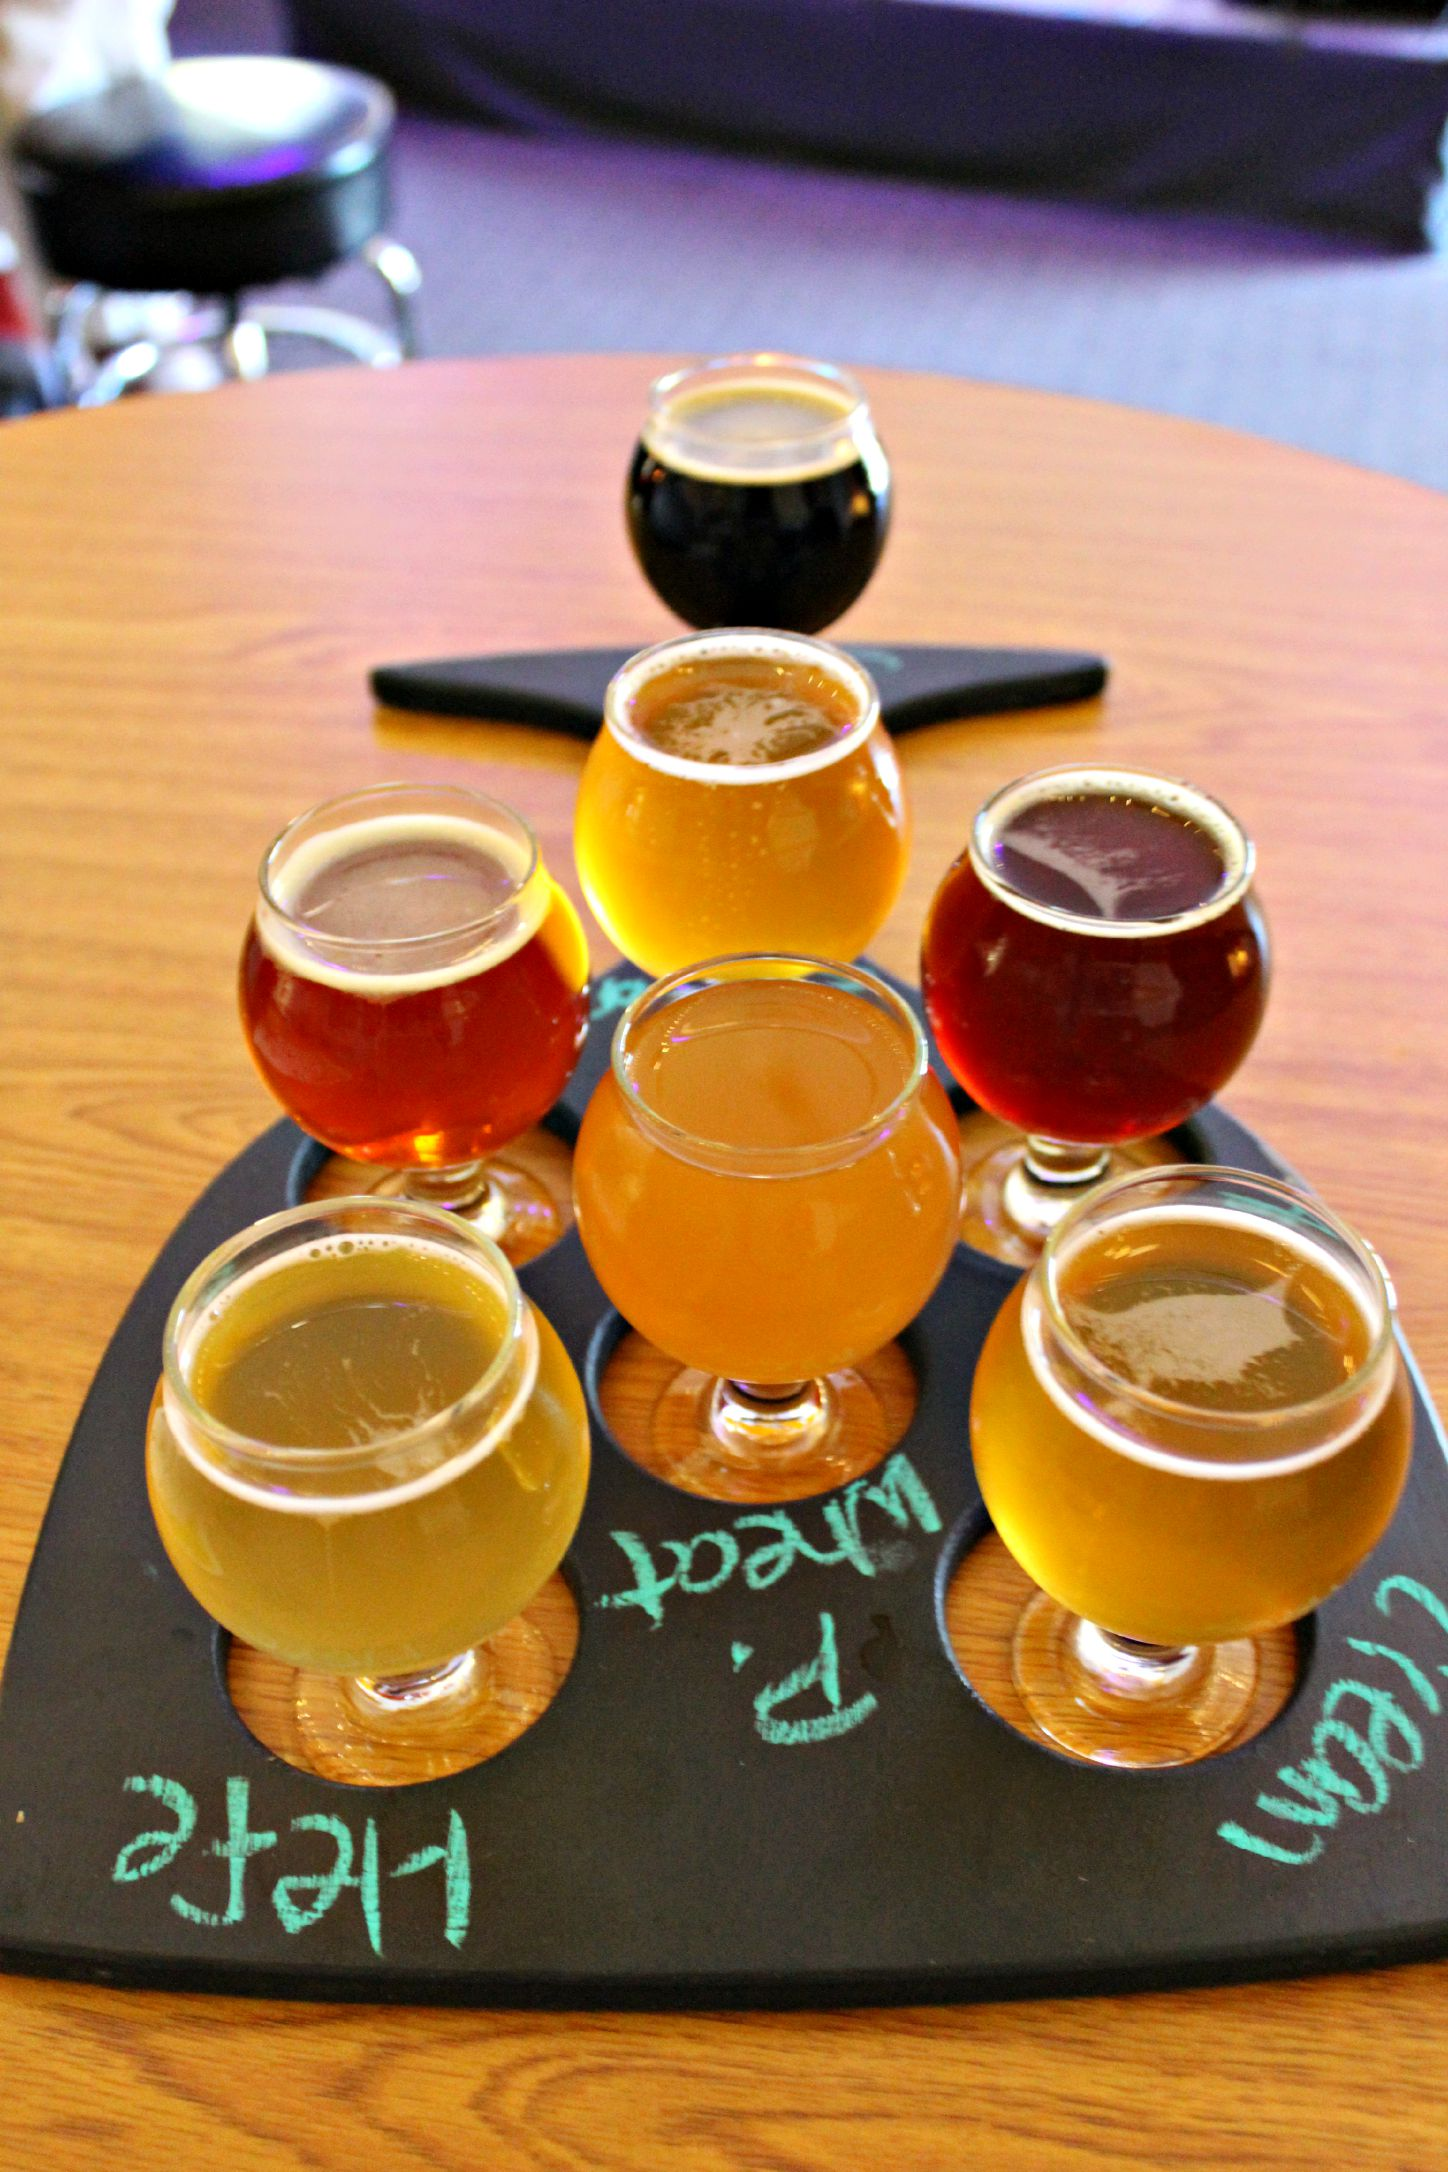 August's New Jersey and PA Brewery Tours